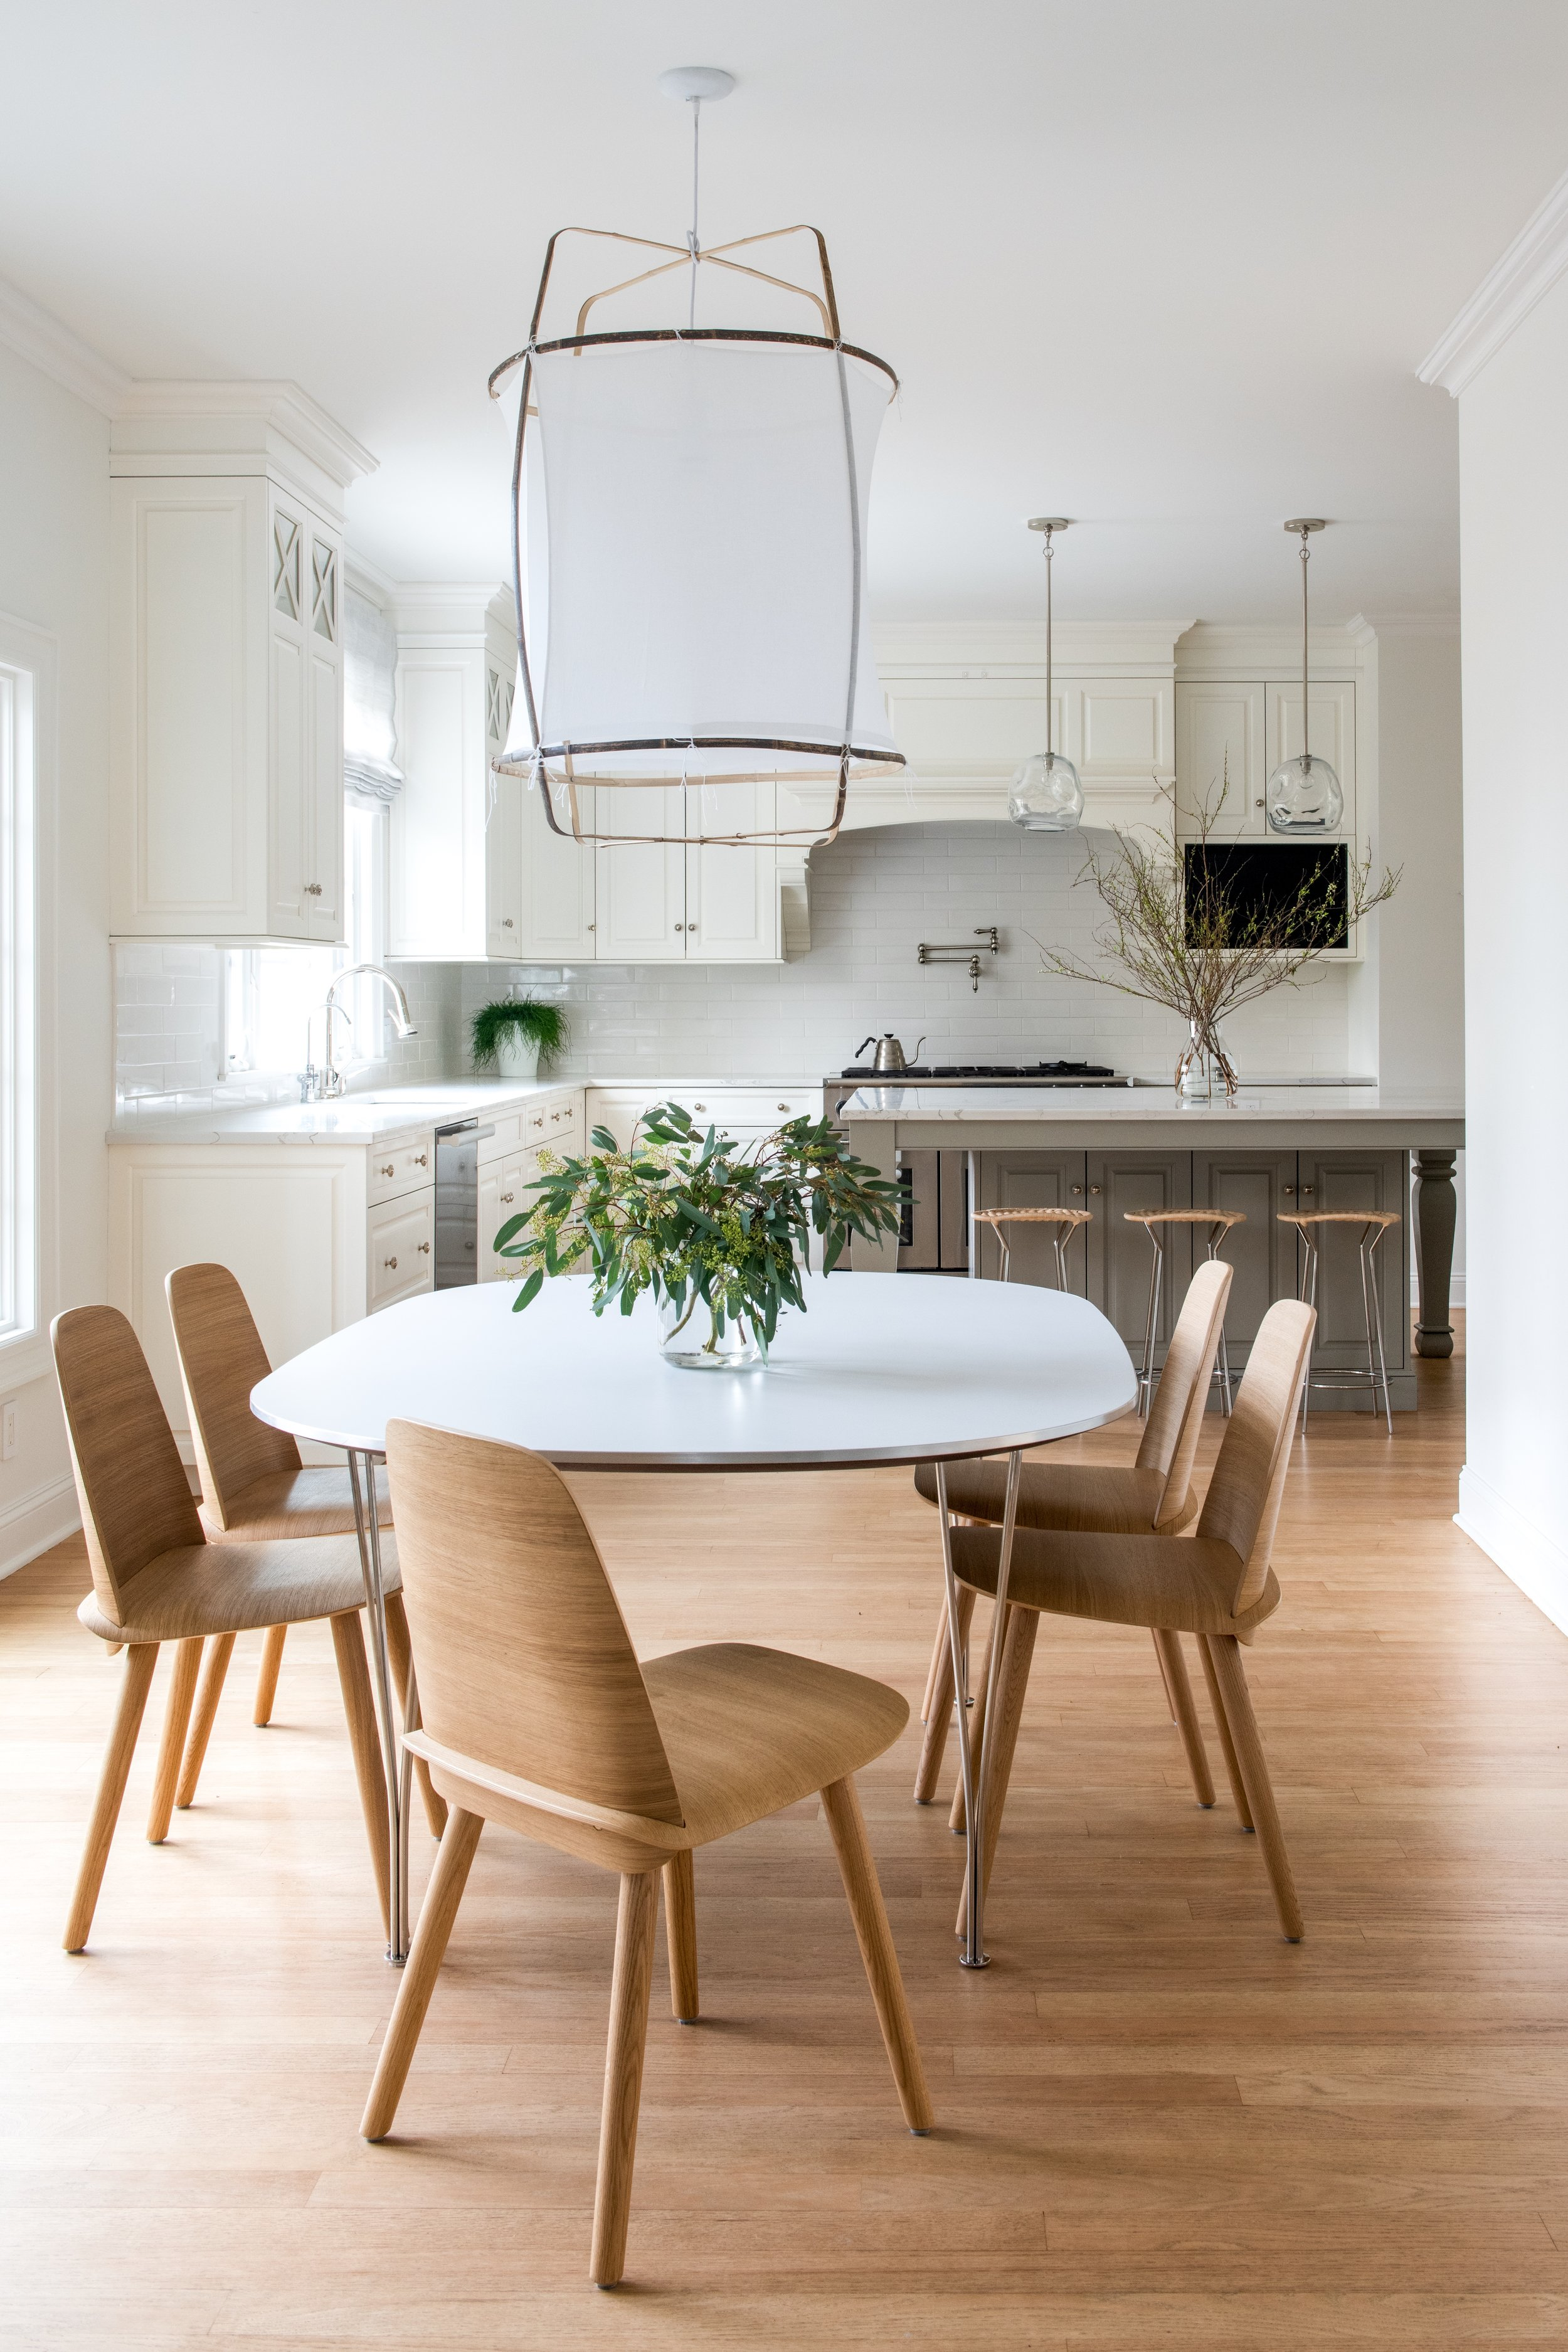 A Ridgewood, New Jersey spec house remodeled to amend architectural proportions and update finishes. The client wanted a clean, soft, neutral aesthetic as a counterpoint to her busy daily life. Child-friendly quartz countertops in a white and grey veined patten replace dark granite to lighten and brighten the space with new deck mounted Waterworks fixtures. The dark and busy backsplash was removed and a clean and bright Waterworks ceramic tile was installed in an a-typical layout for the smallest design detail. All existing appliances and cabinetry were kept, but the dark wood center island was painted in Farrow & Ball's Hardwick White to bring in the grey the client loves. The Bar stools in a woven wicker sourced from Italy create extra seating in the heart of the home. A new informal eating space was created for day to day family meals with a Super Elliptical table by Bruno Mathsson and Nerd Chairs from Design Within Reach that sit under an airy linen and bamboo pendant light from Ay Illuminate.